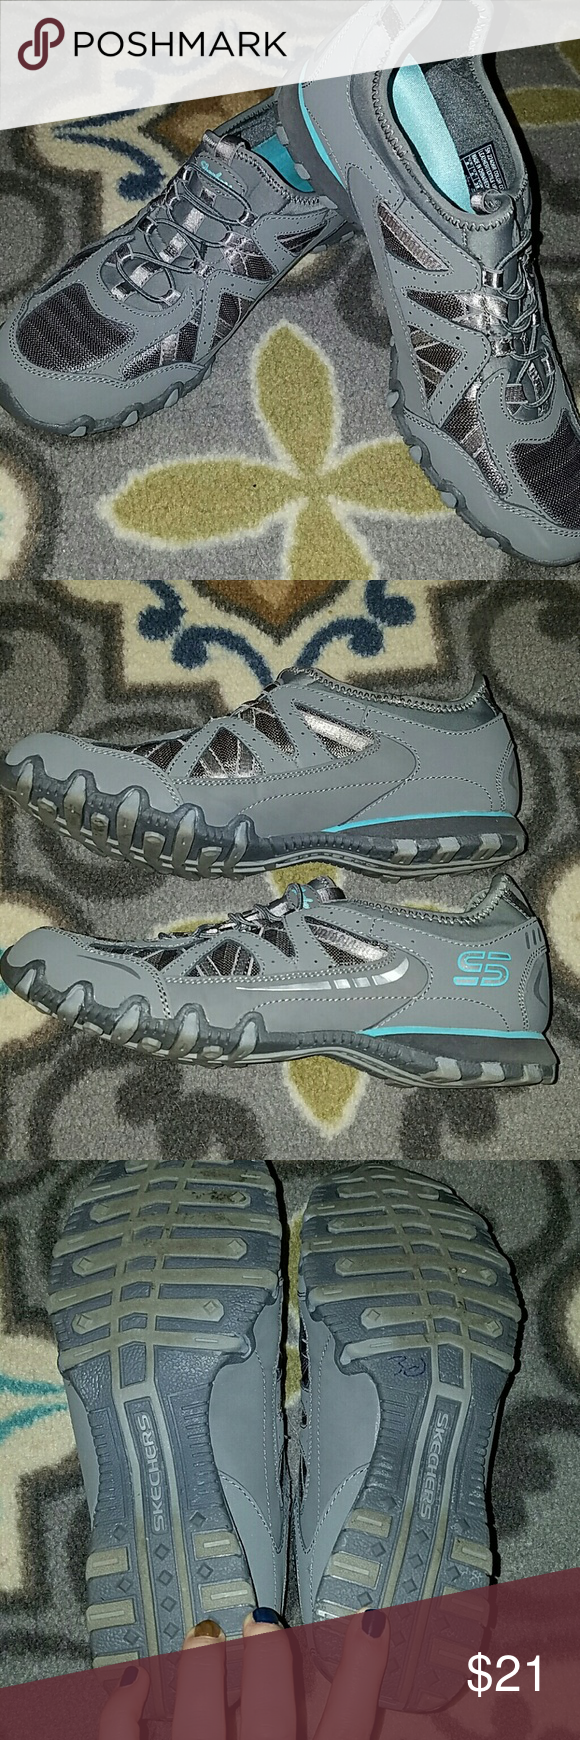 Grey Skechers Great little walking shoes for running errands. Super comfy. Only selling because I have too many similar pairs. Excellent condition! Skechers Shoes Athletic Shoes